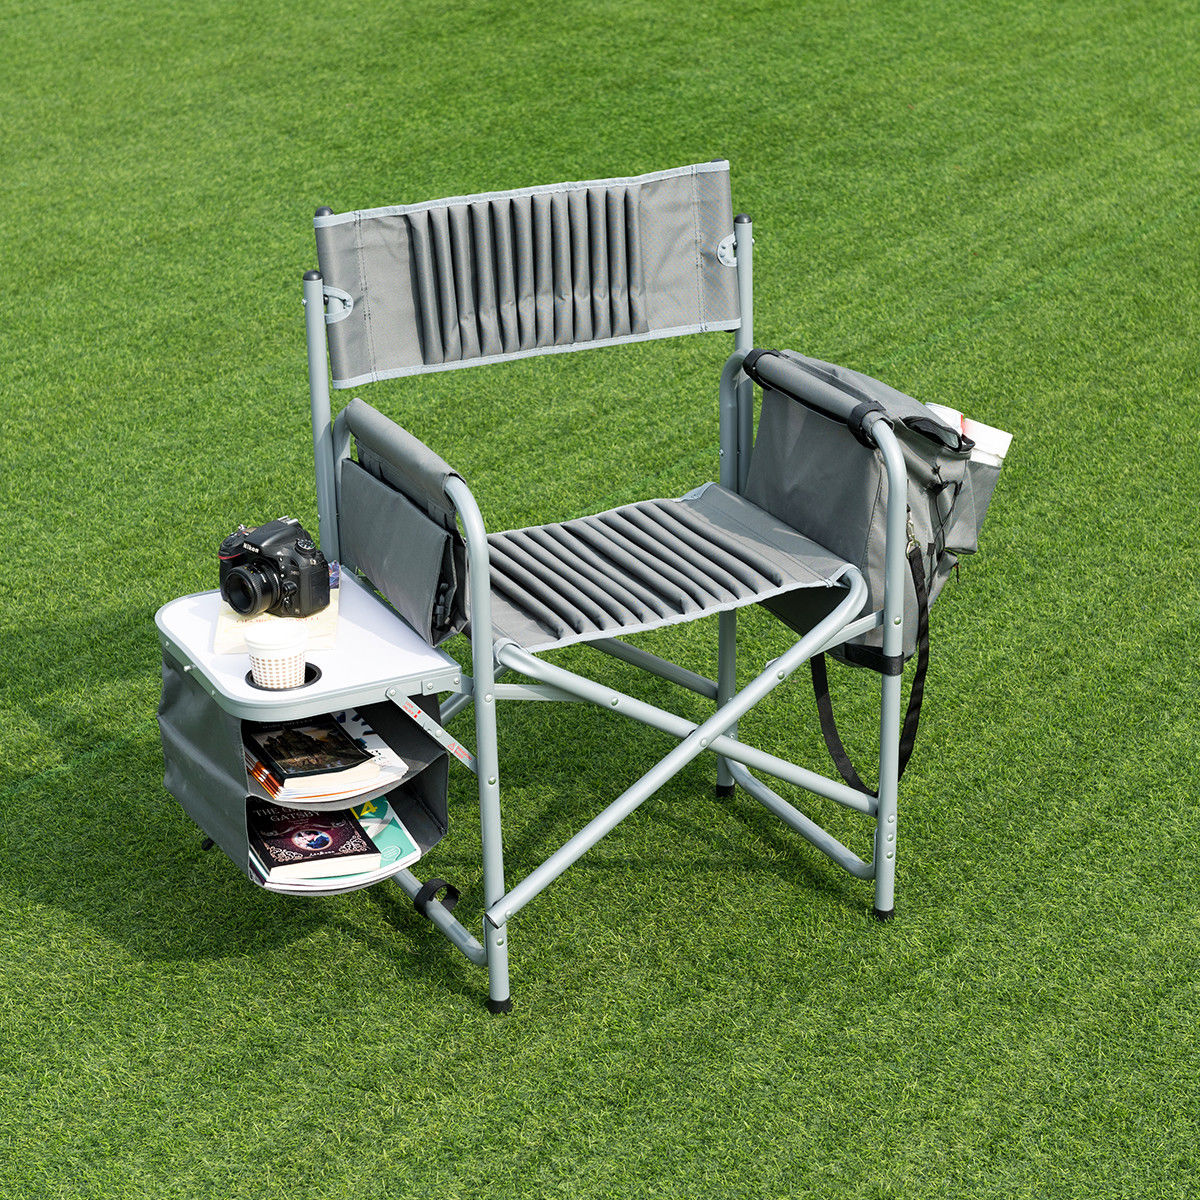 way folding compact director chair aluminum cup outdoor side table cooler holder bag mat design mirror with lights round acrylic coffee placemats cream and wood diy living room